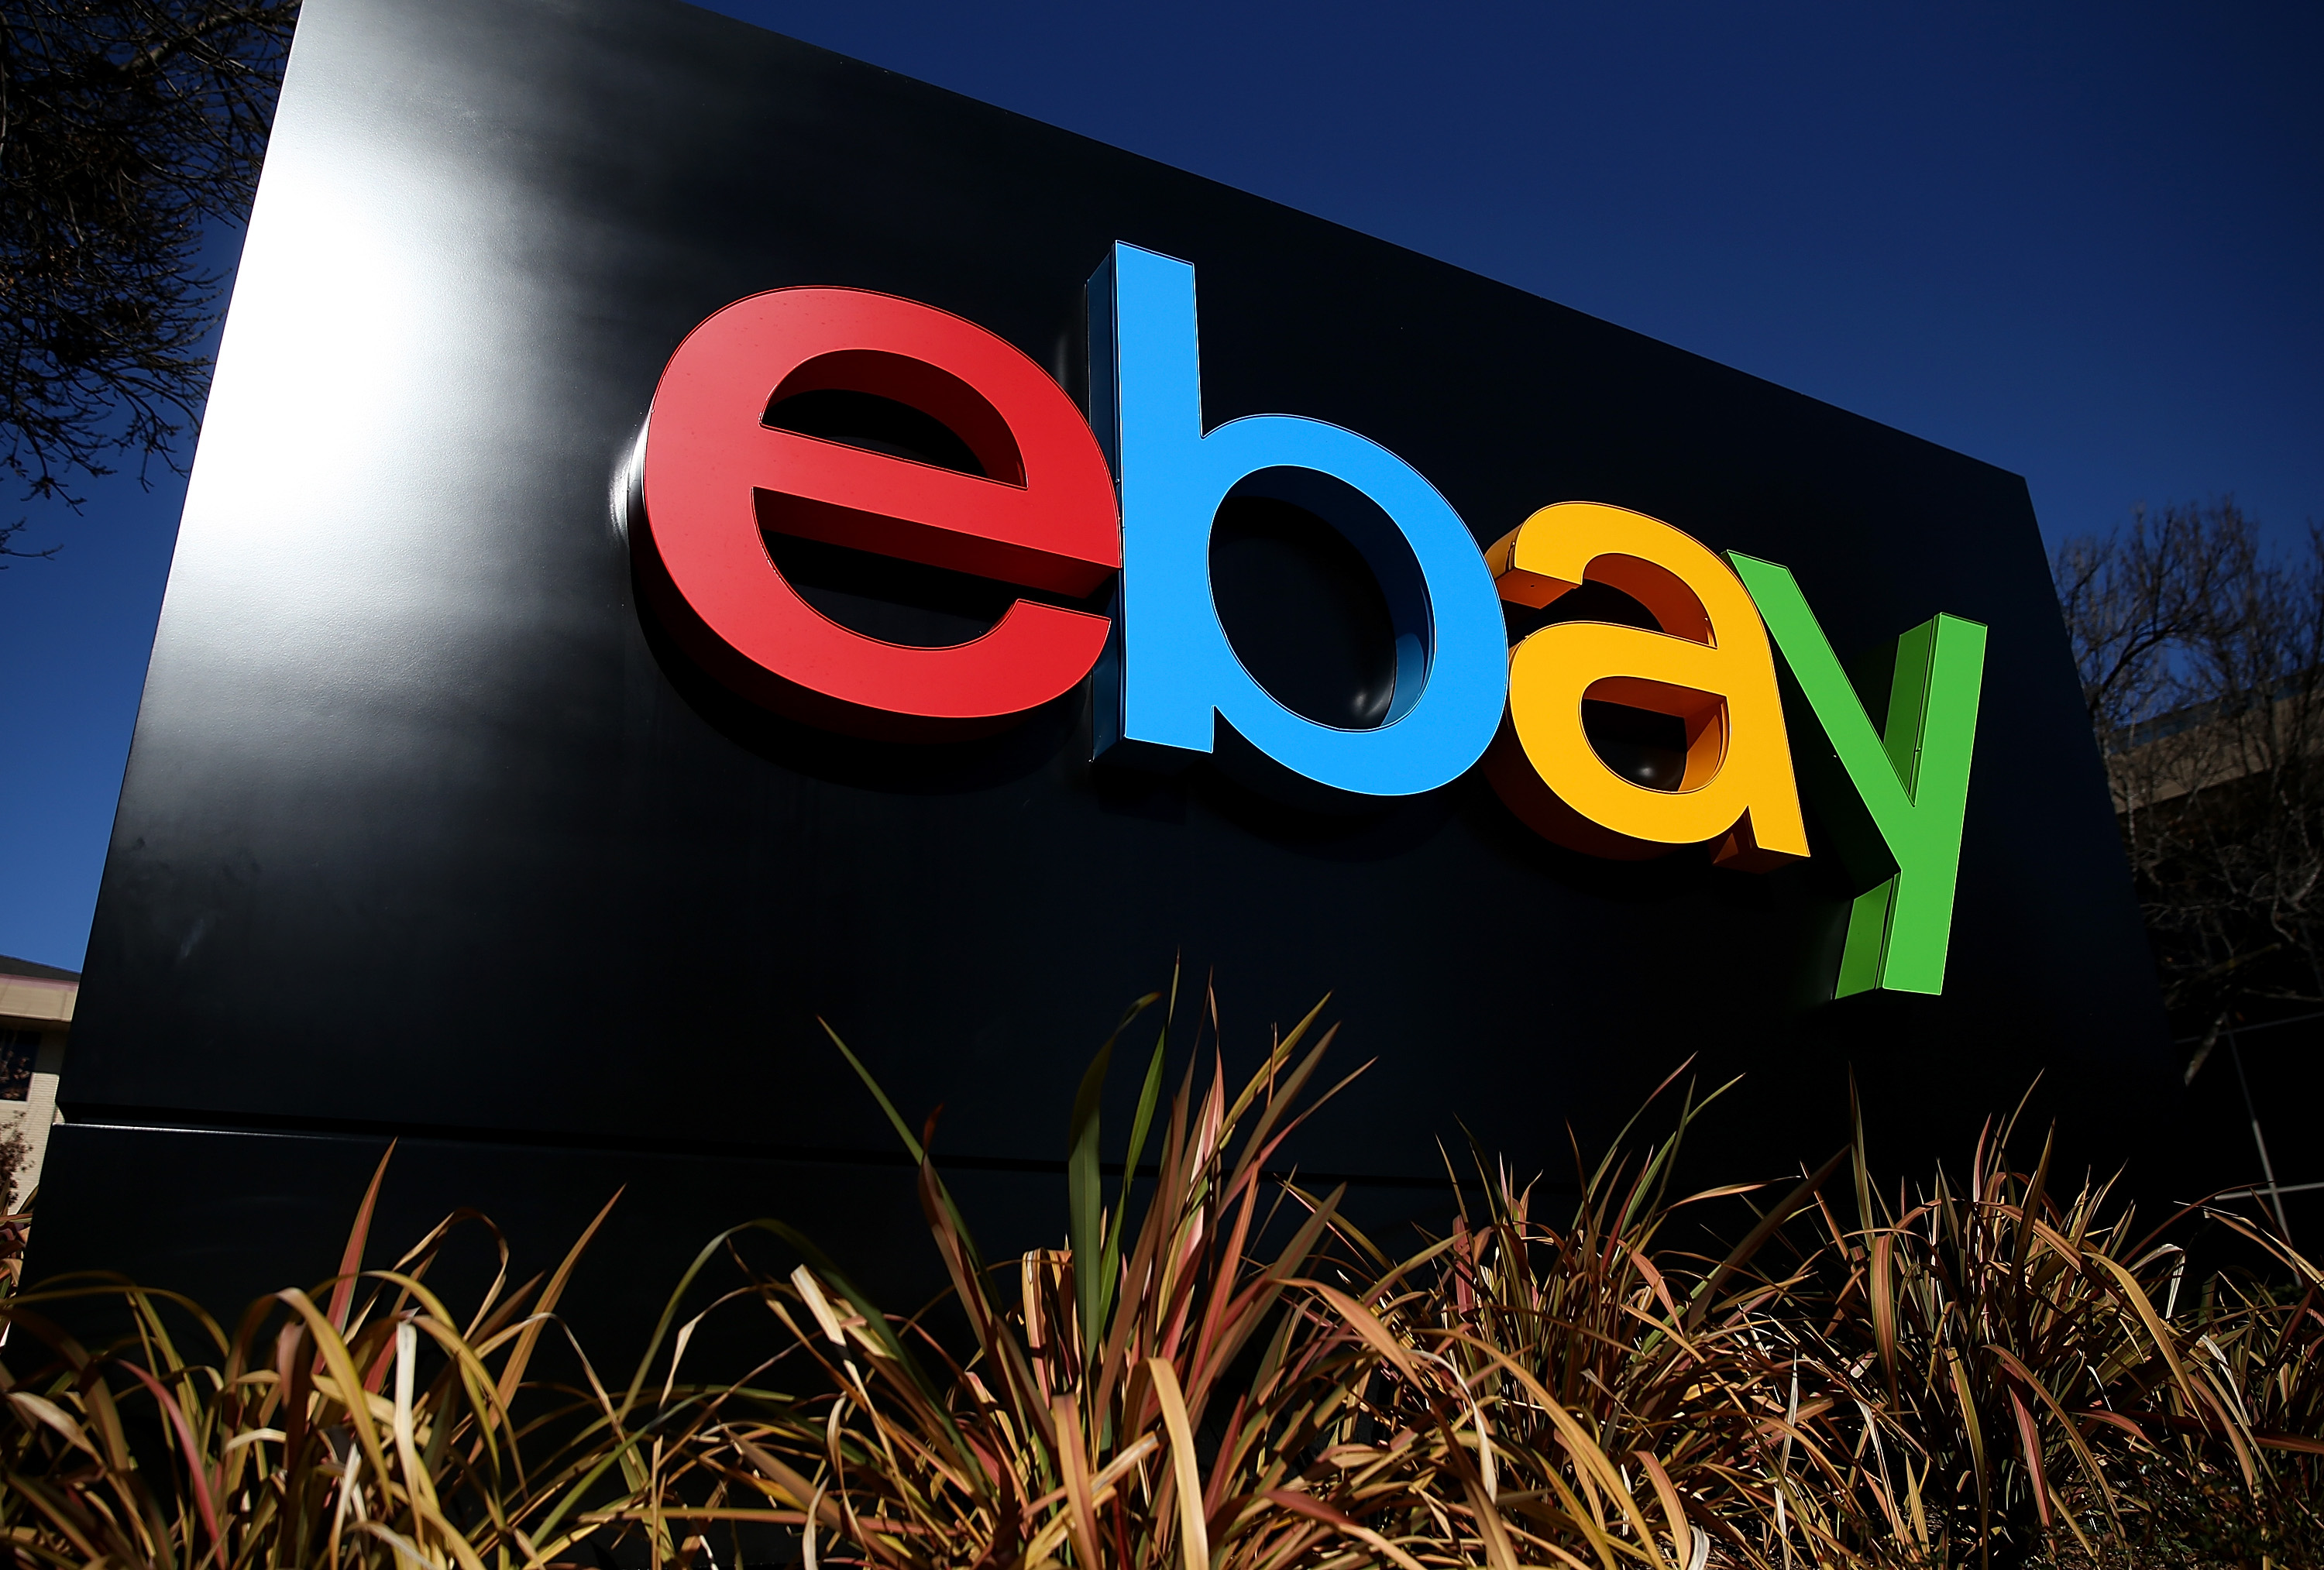 Why EBay Doesn't Want to Build Your Online Shopping Site Anymore